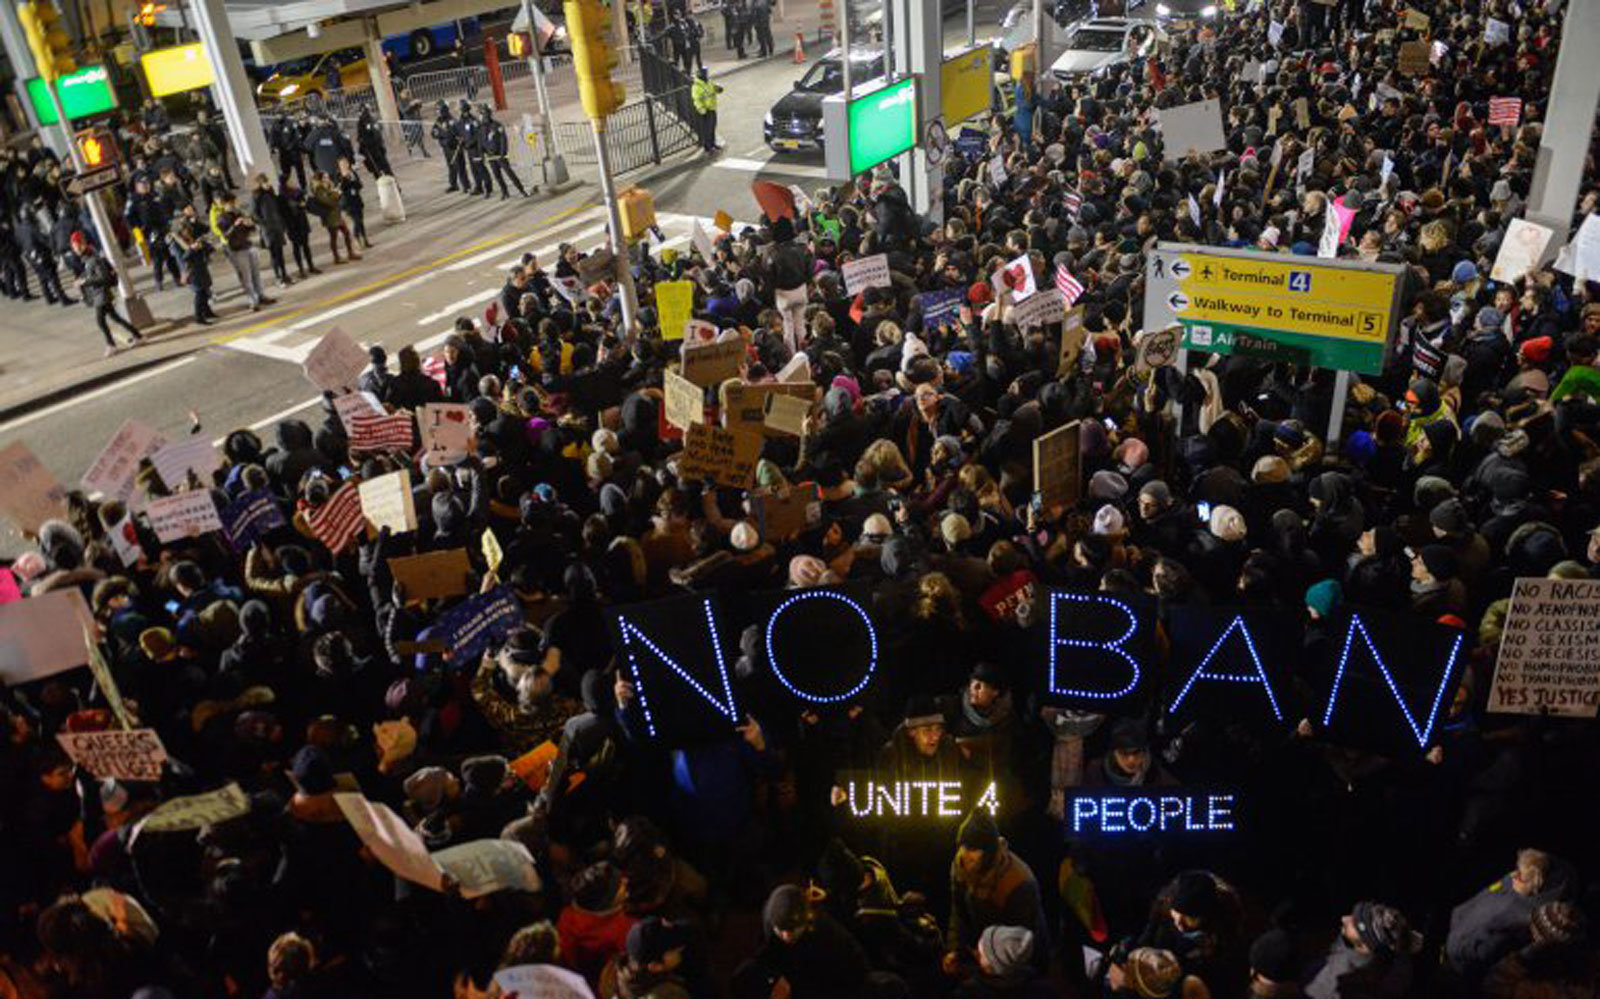 Protestors rally against the Muslim immigration ban at JFK on Jan. 28, 2017 in New York City.